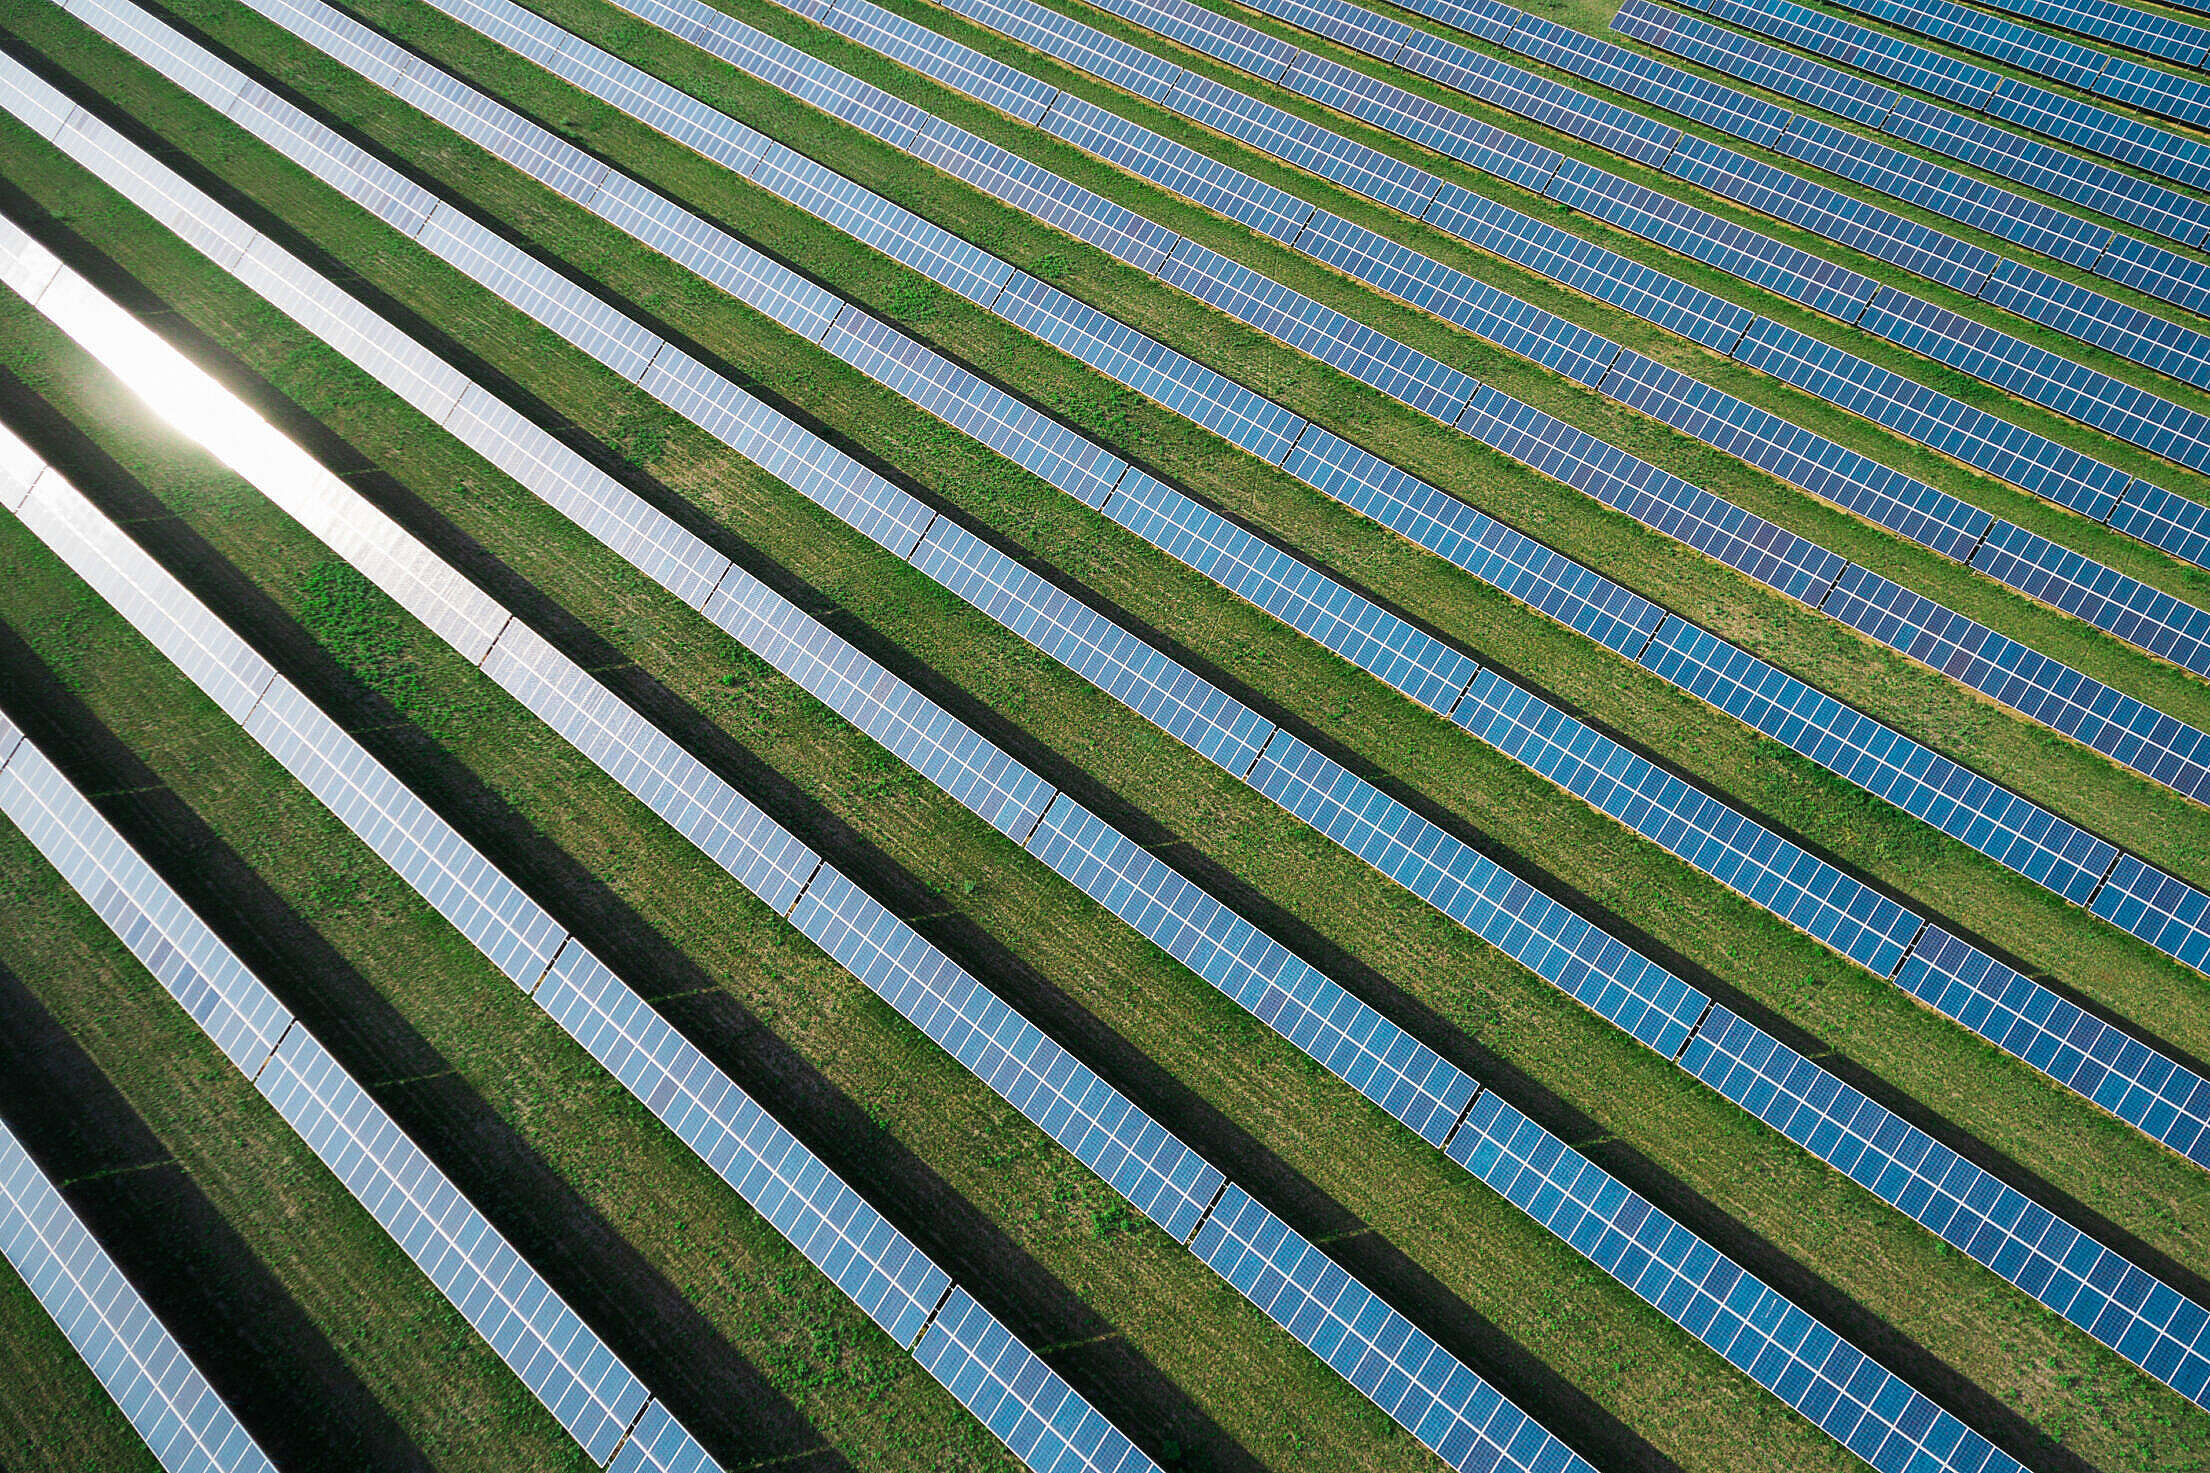 Solar Power Plant from Above #2 Free Stock Photo